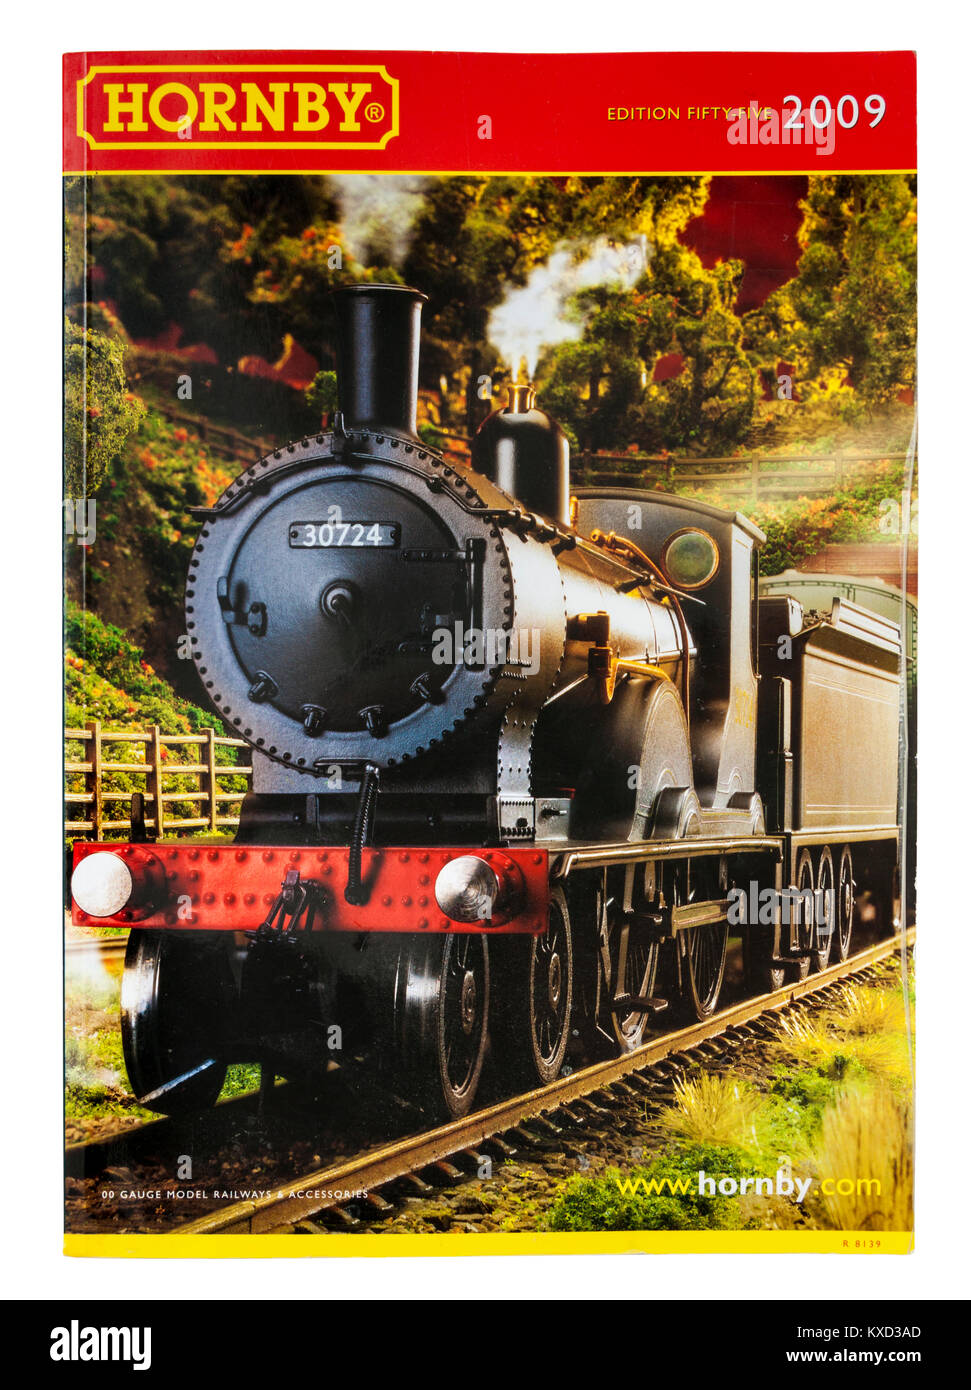 Hornby model railways catalogue from 2009 (edition 55) with London & South Western railway T9 4-4-0 locomotive - Stock Image